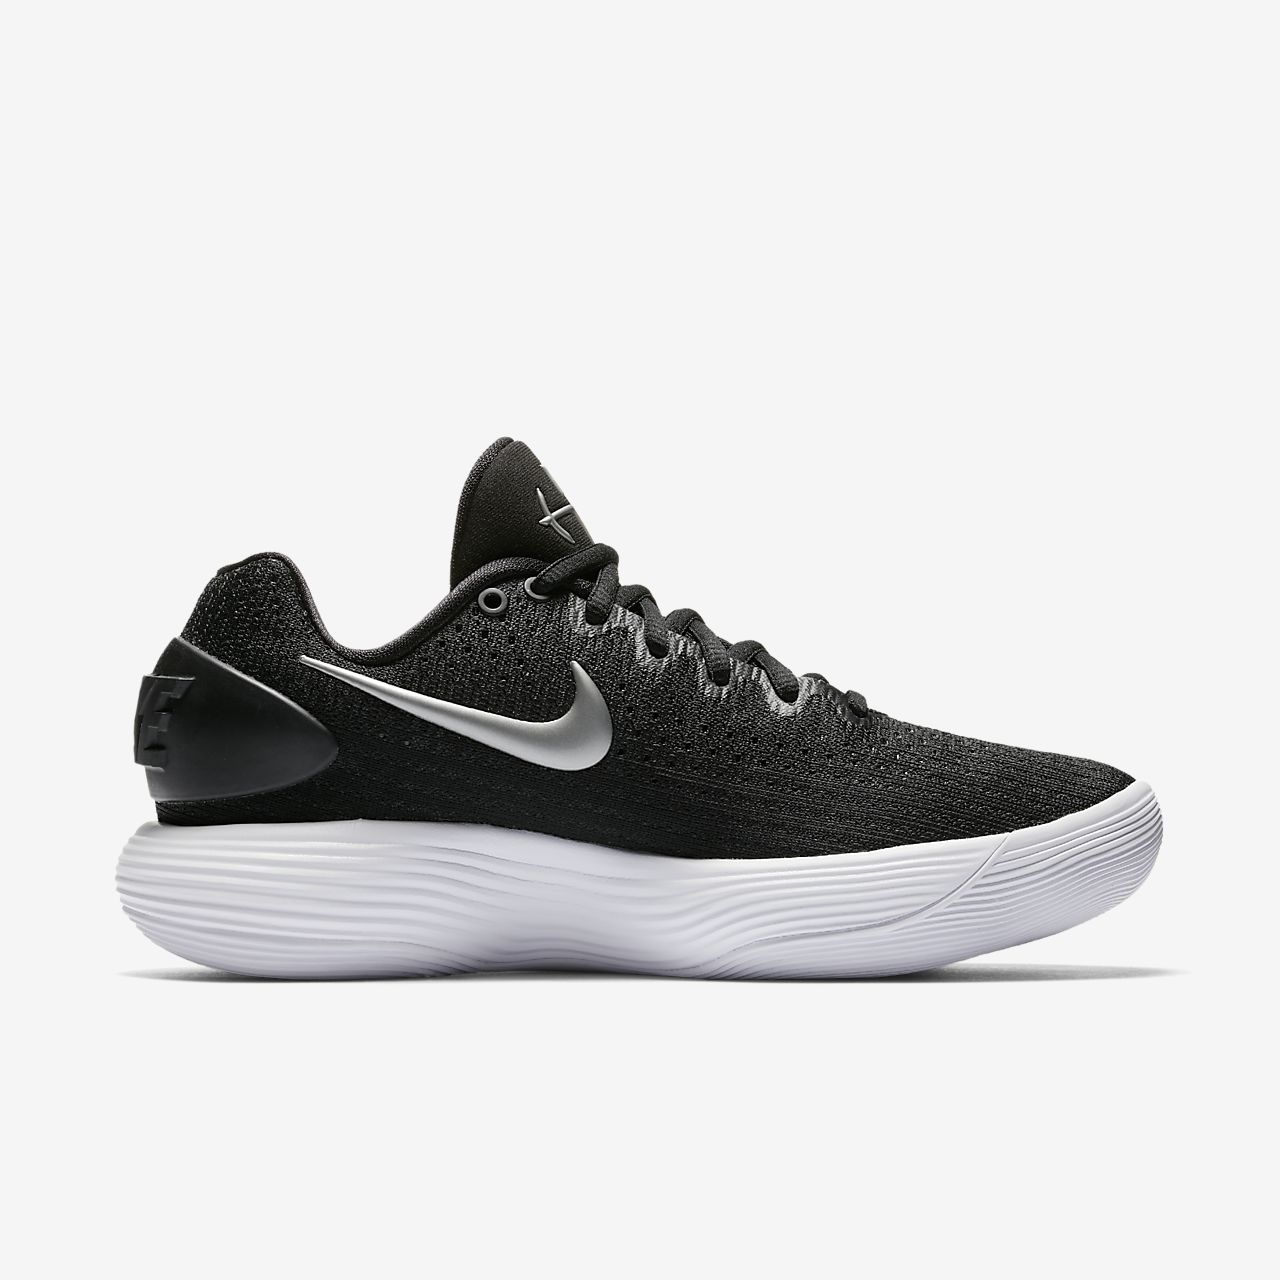 Nike Hyperdunk 2017 Low Low Low (Team) Damen-Basketballschuh Mode Schuhe-AR3033DS    | Won hoch geschätzt und weithin vertraut im in- und Ausland vertraut